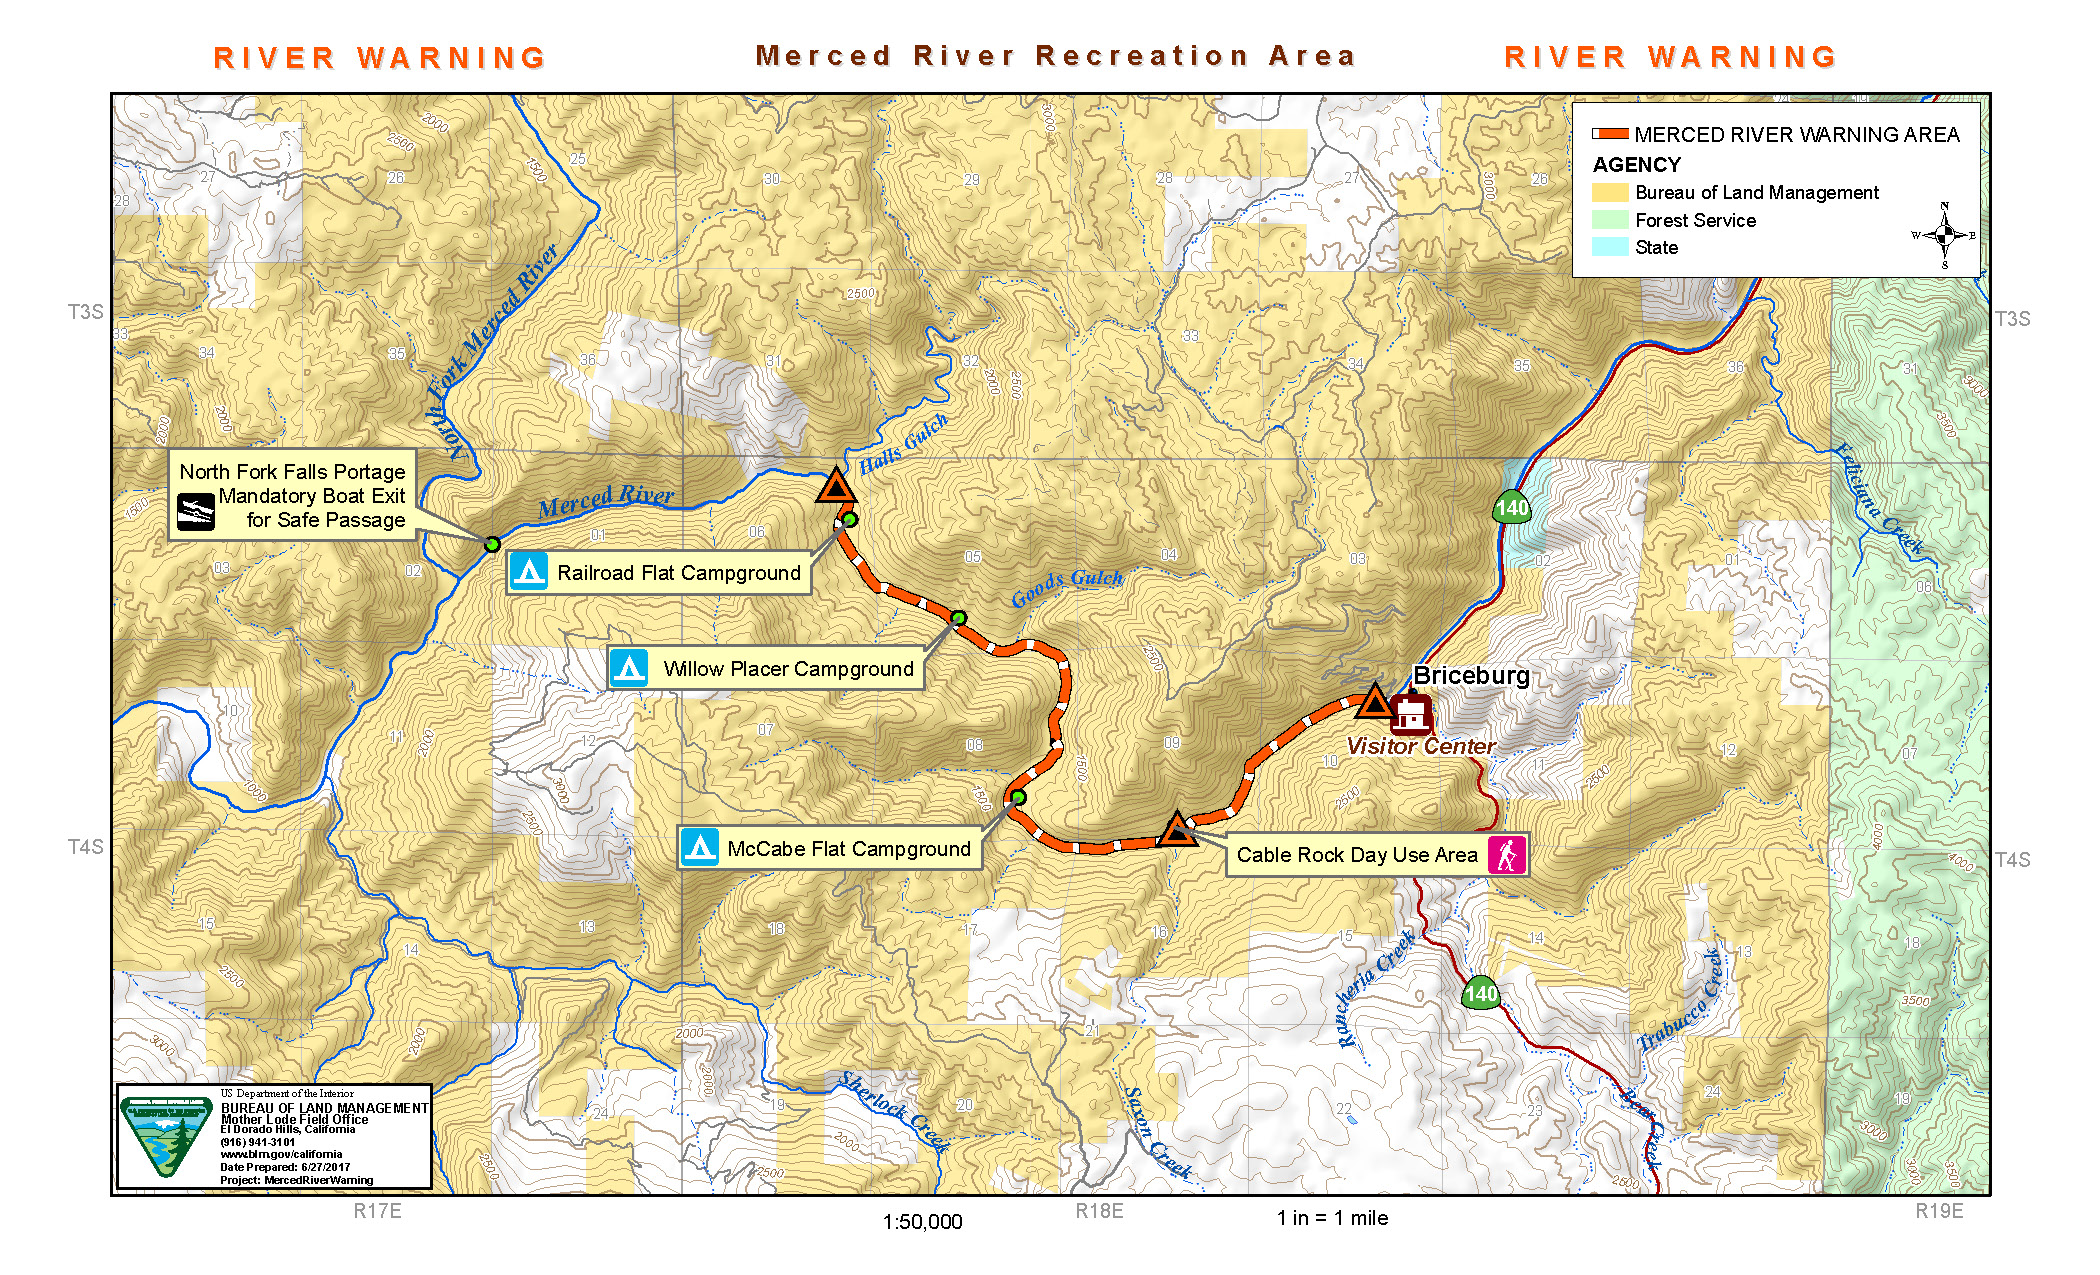 Merced River Recreation Area Map BUREAU OF LAND MANAGEMENT